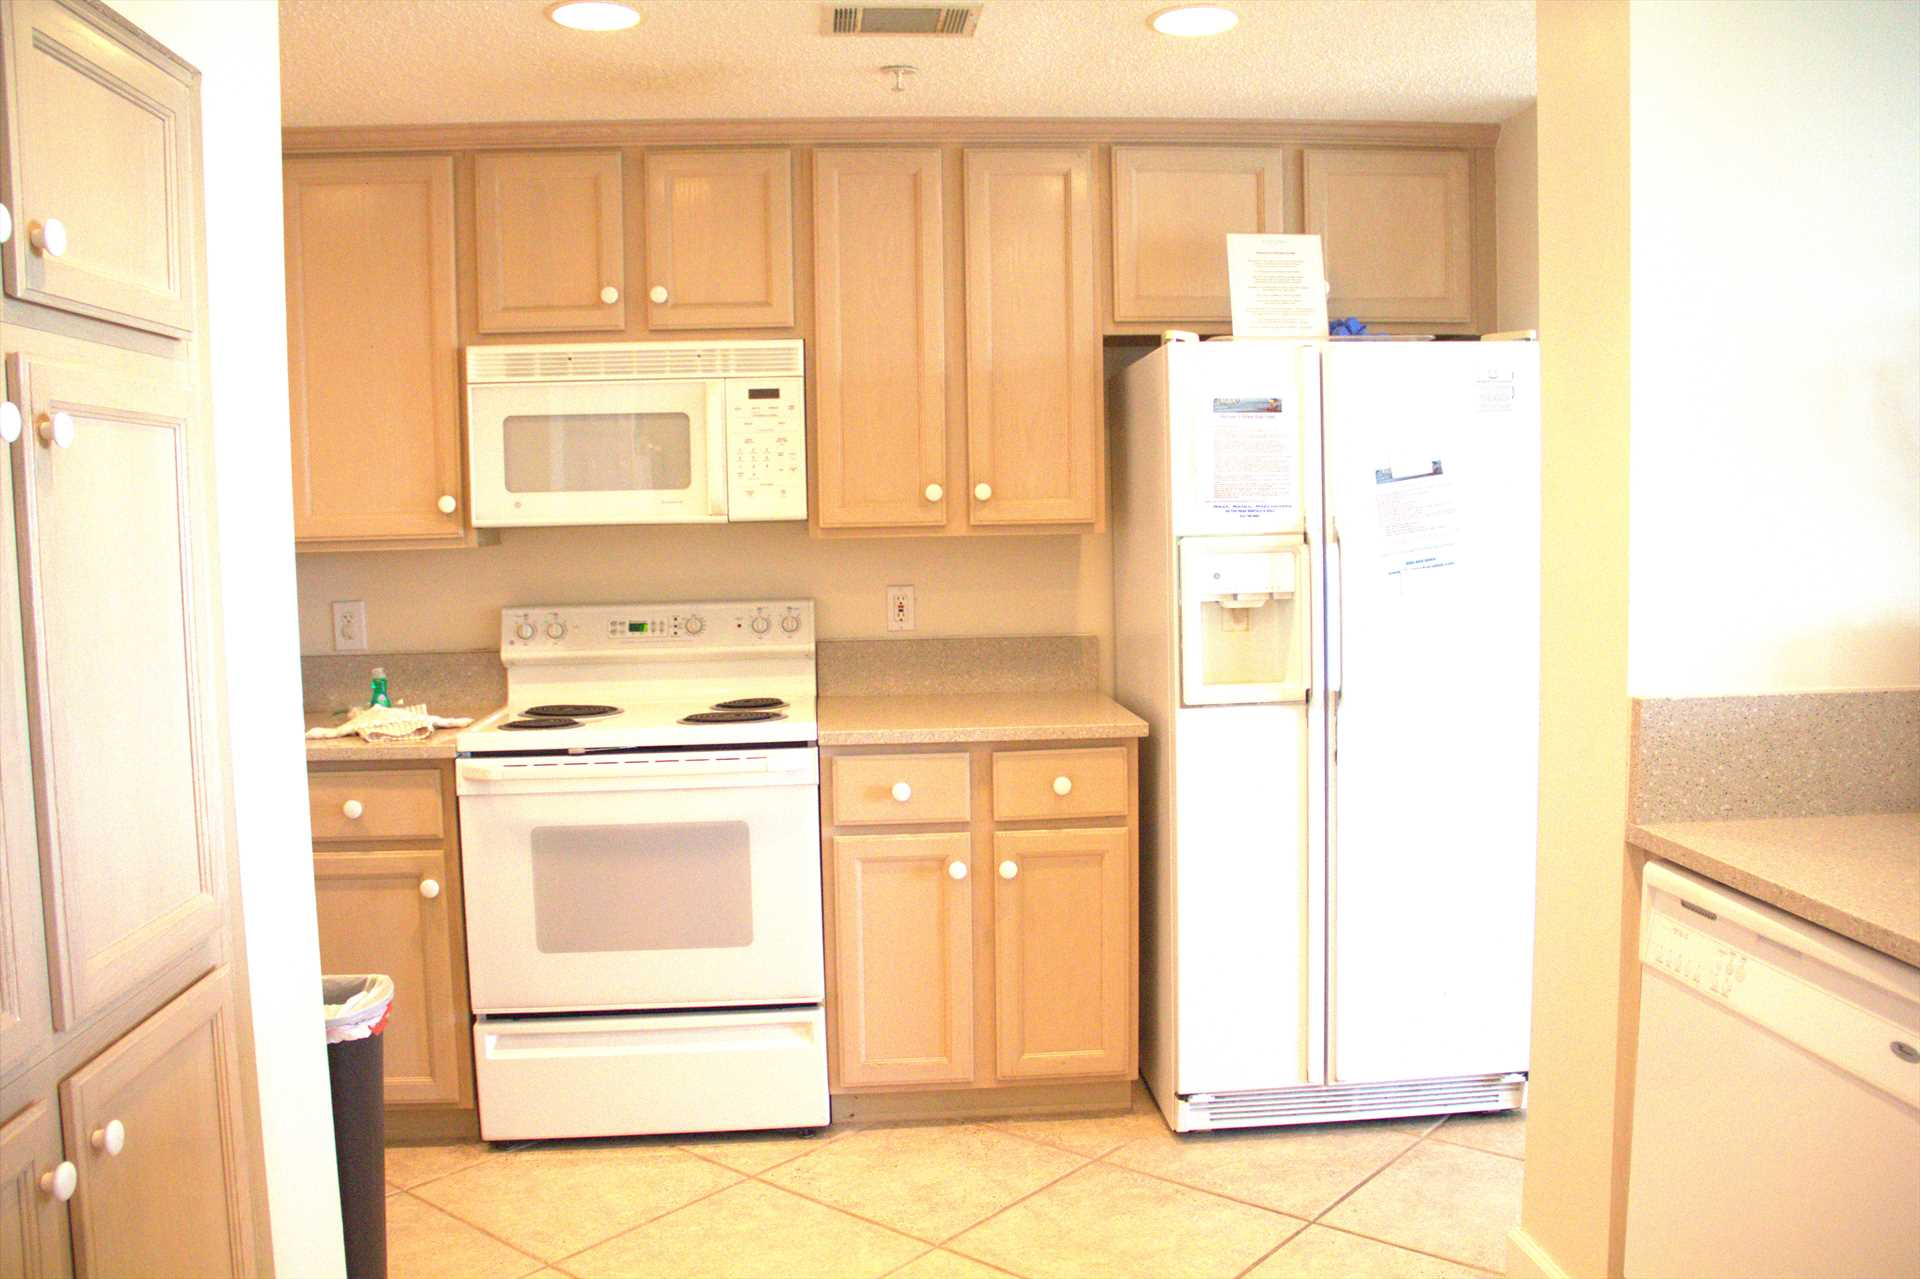 The kitchen comes equipped with a stove, fridge, microwave a